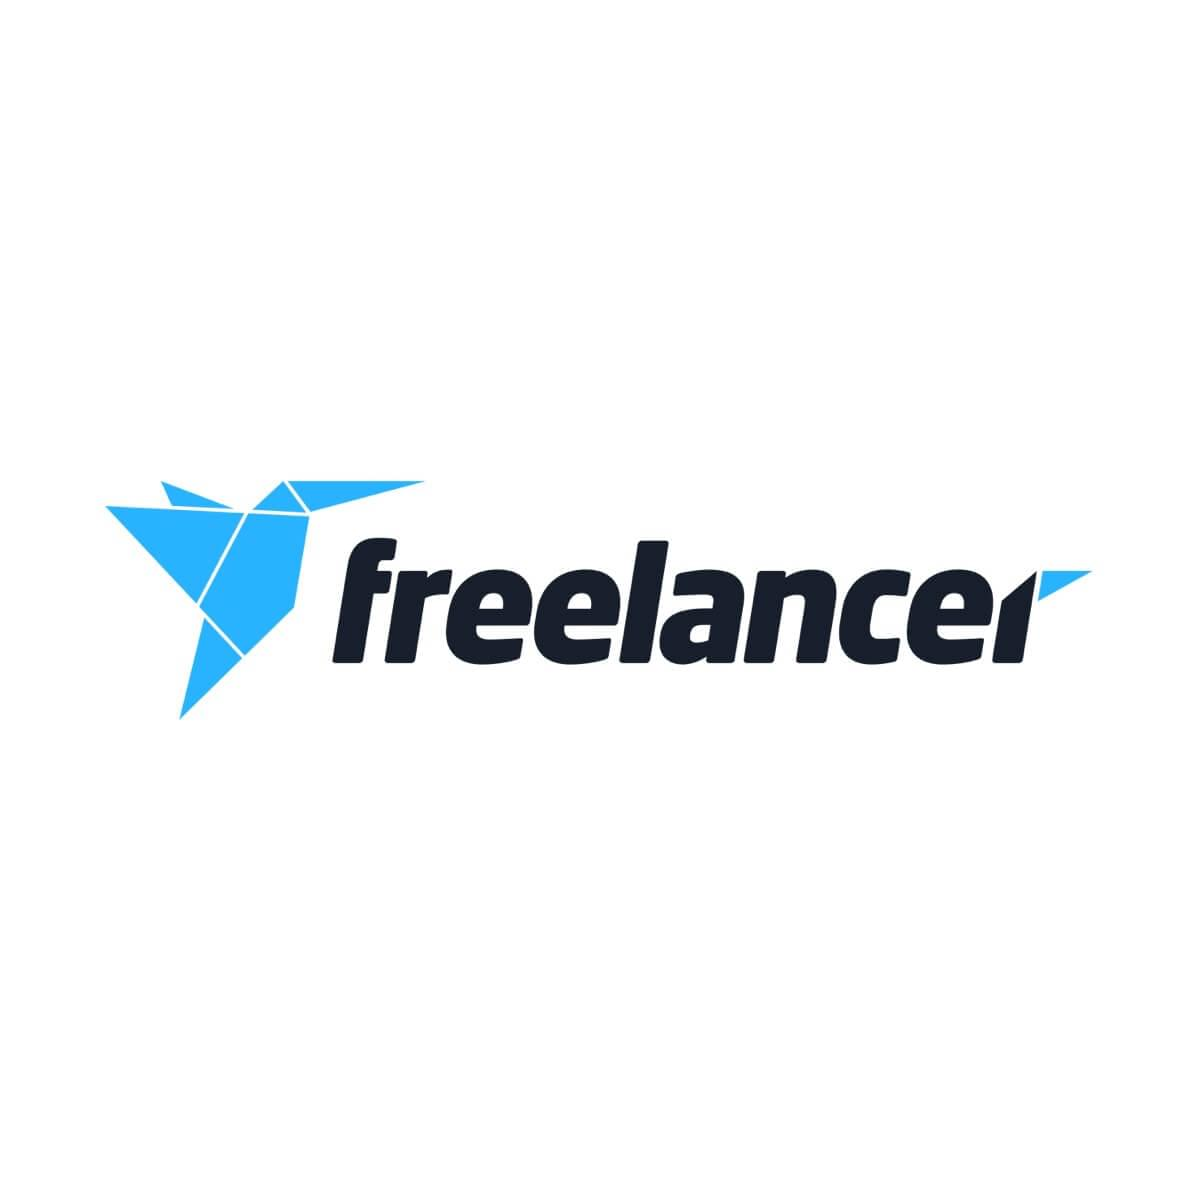 marketplace b2b developer | PHP | Website Design | HTML | MySQL | eCommerce | Freelancer